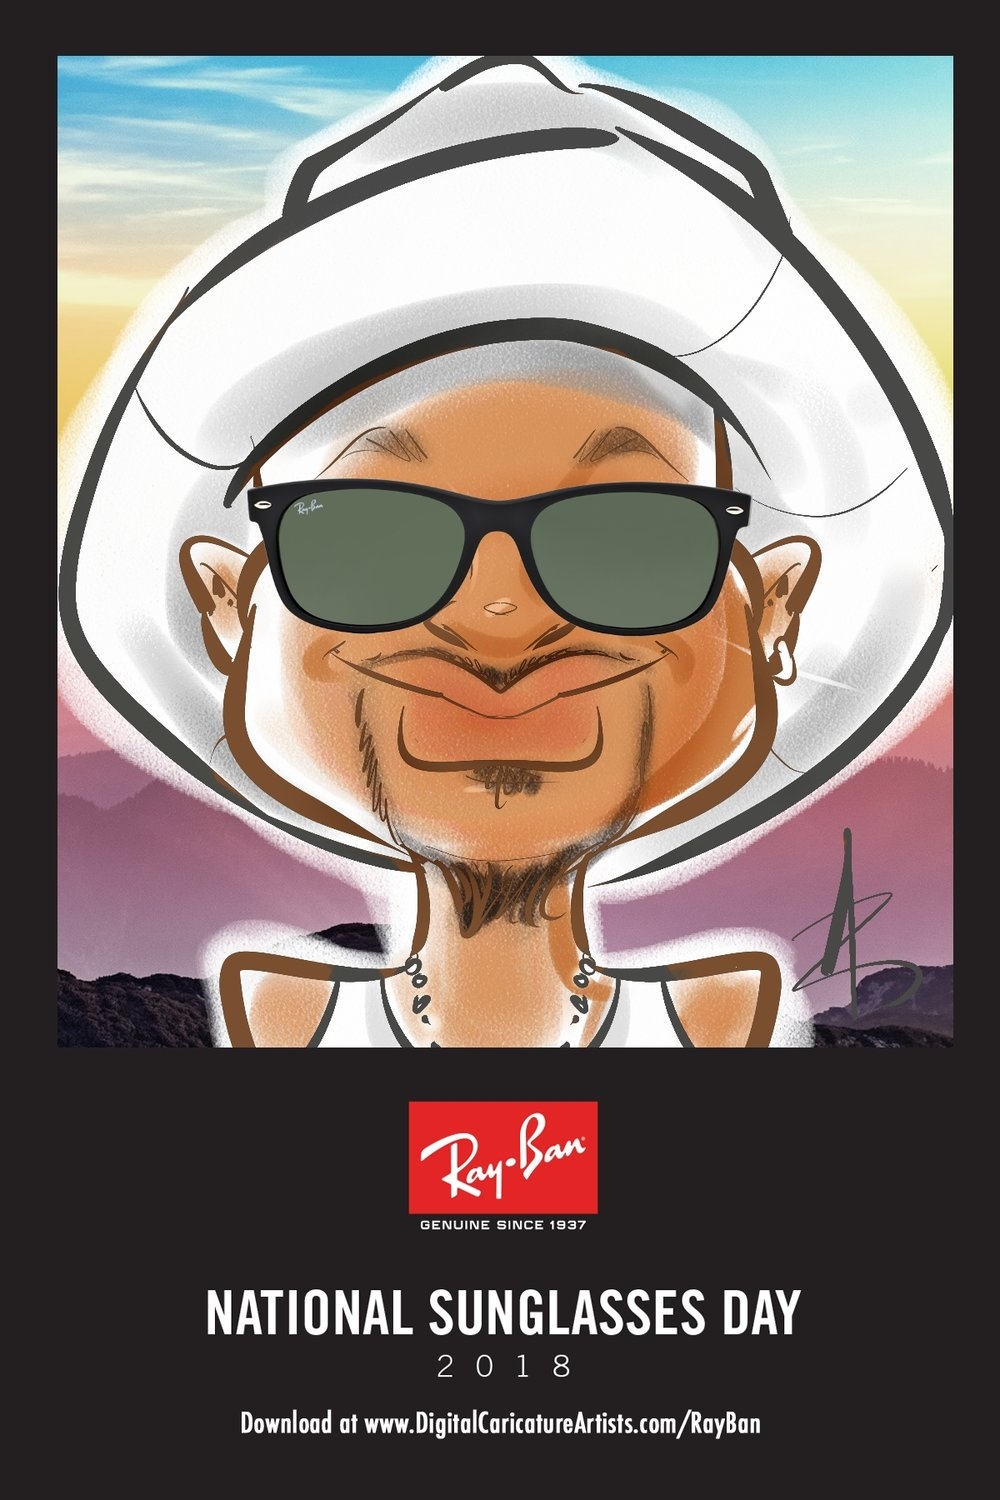 Product Promotion Digital Caricatures